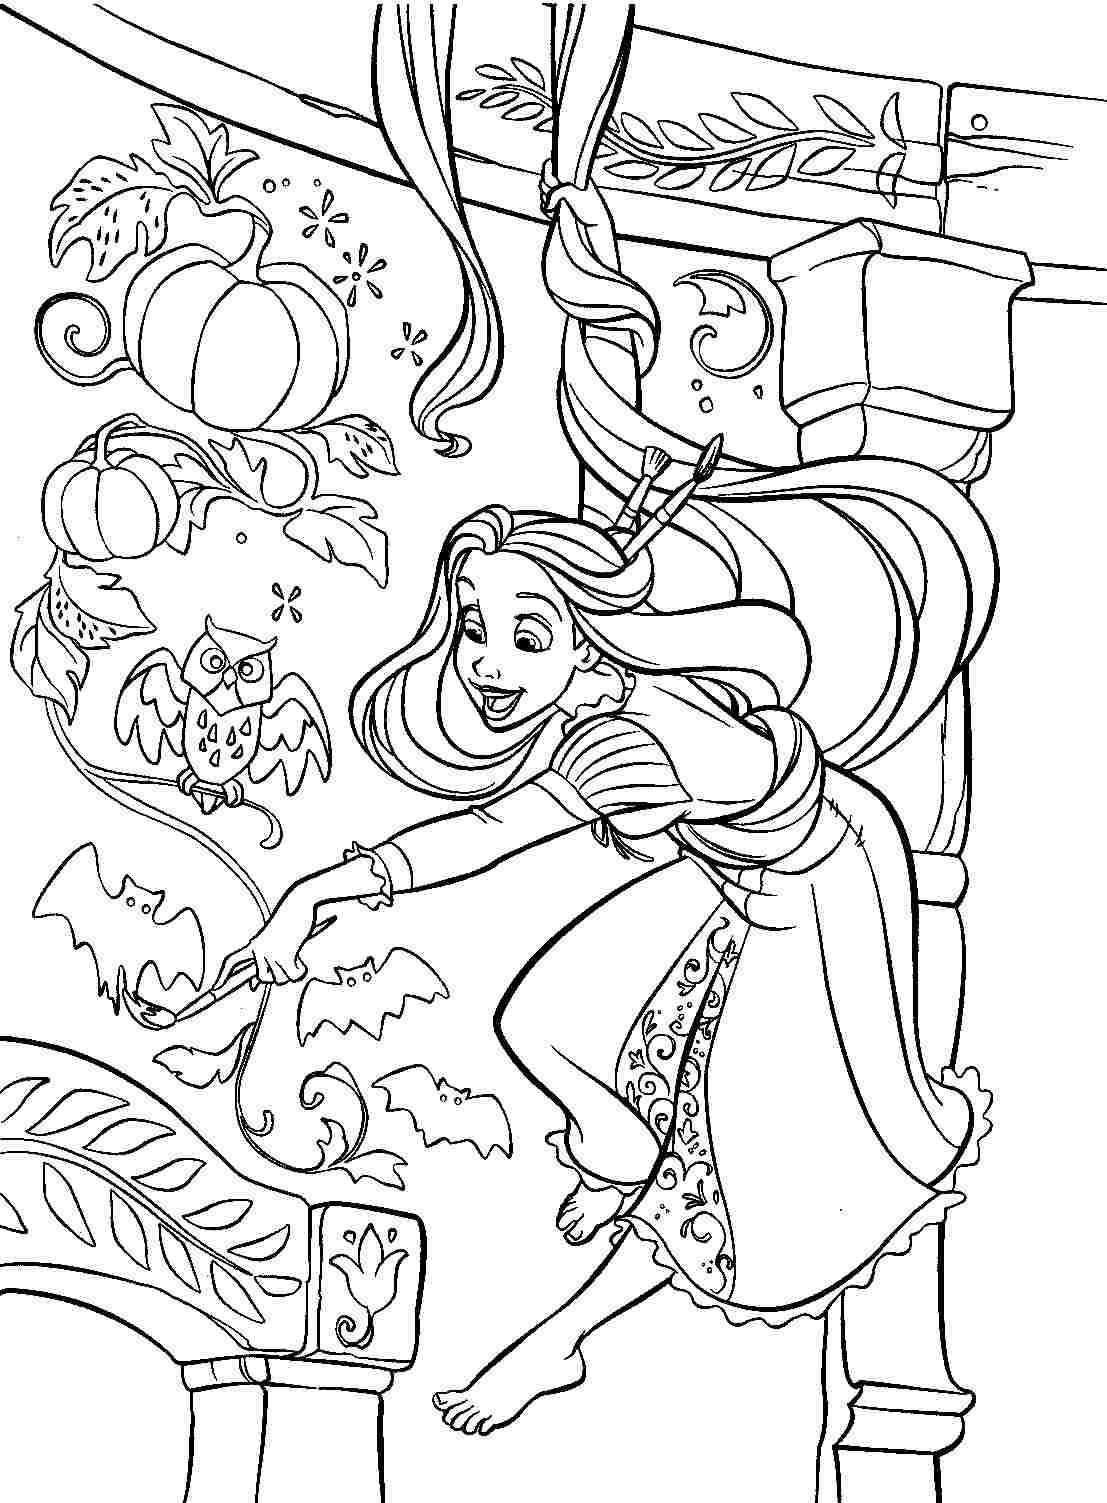 Cute Rapunzel Coloring Pages Ideas From Tangled Story